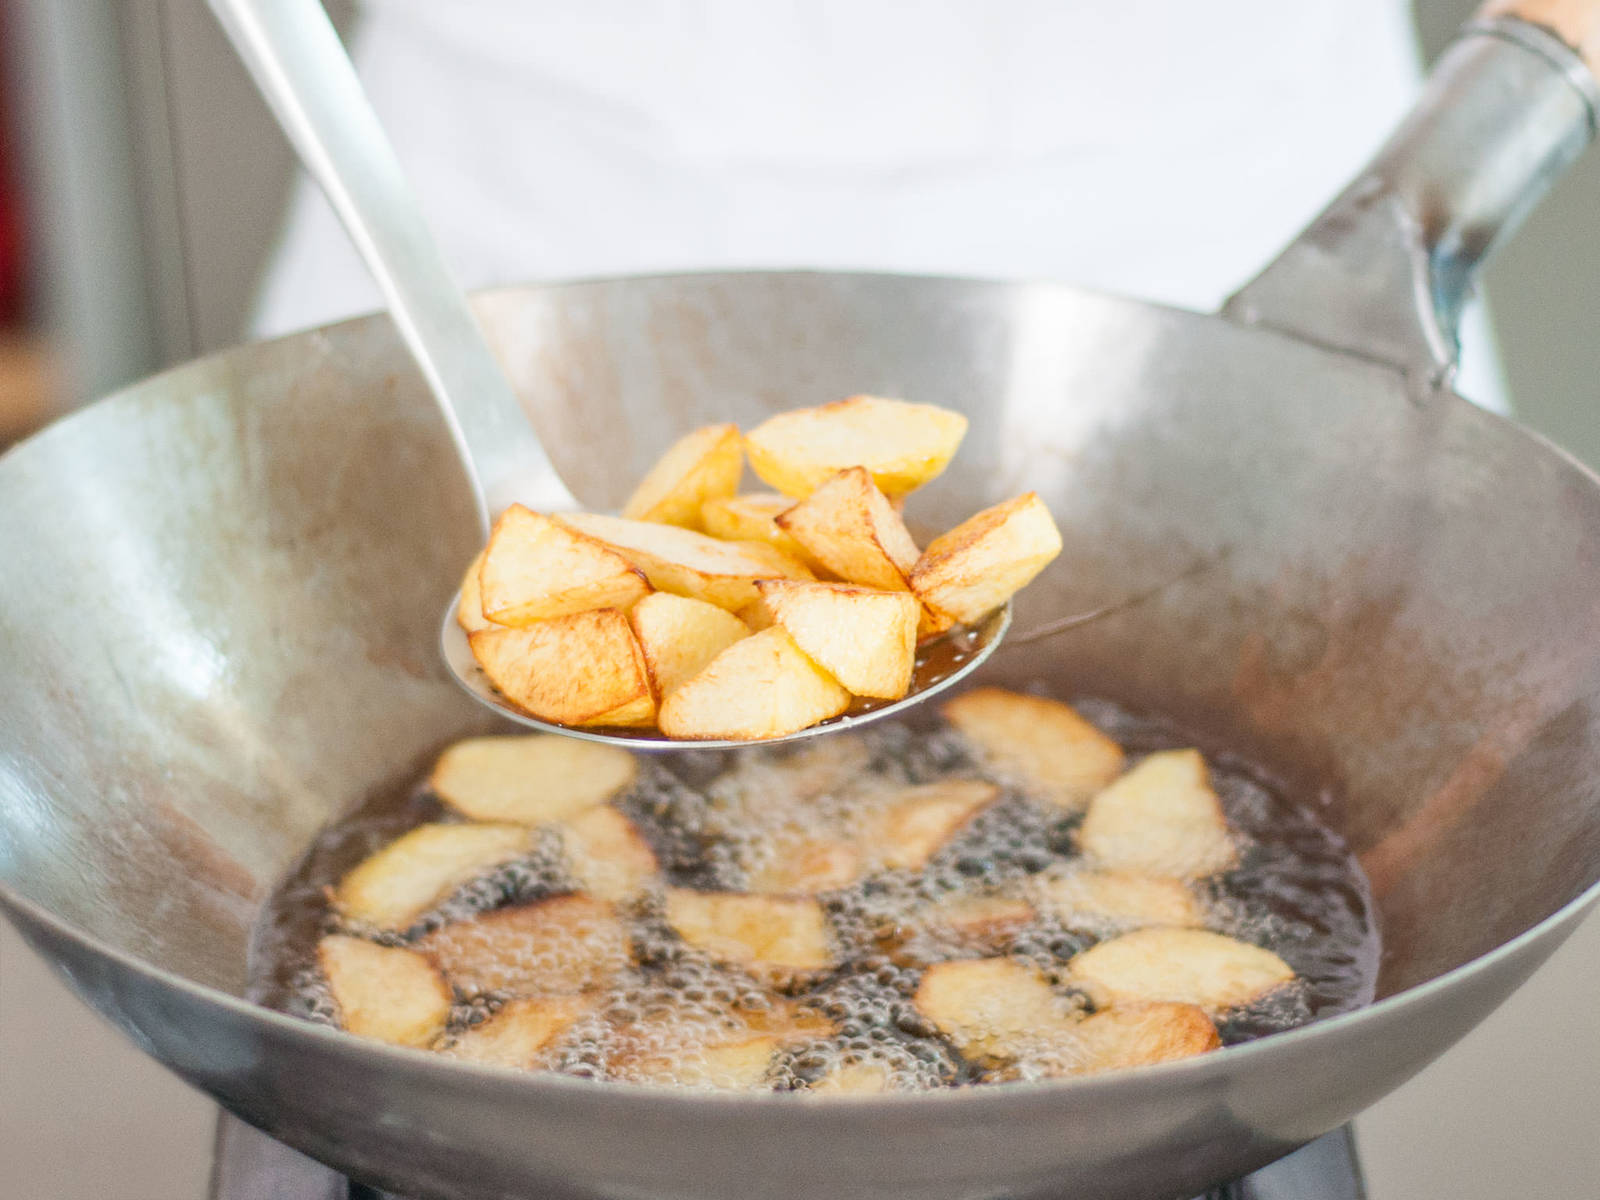 Deep fry potatoes until golden brown, remove with a slotted spoon, and transfer to a paper towel-lined plate to drain.